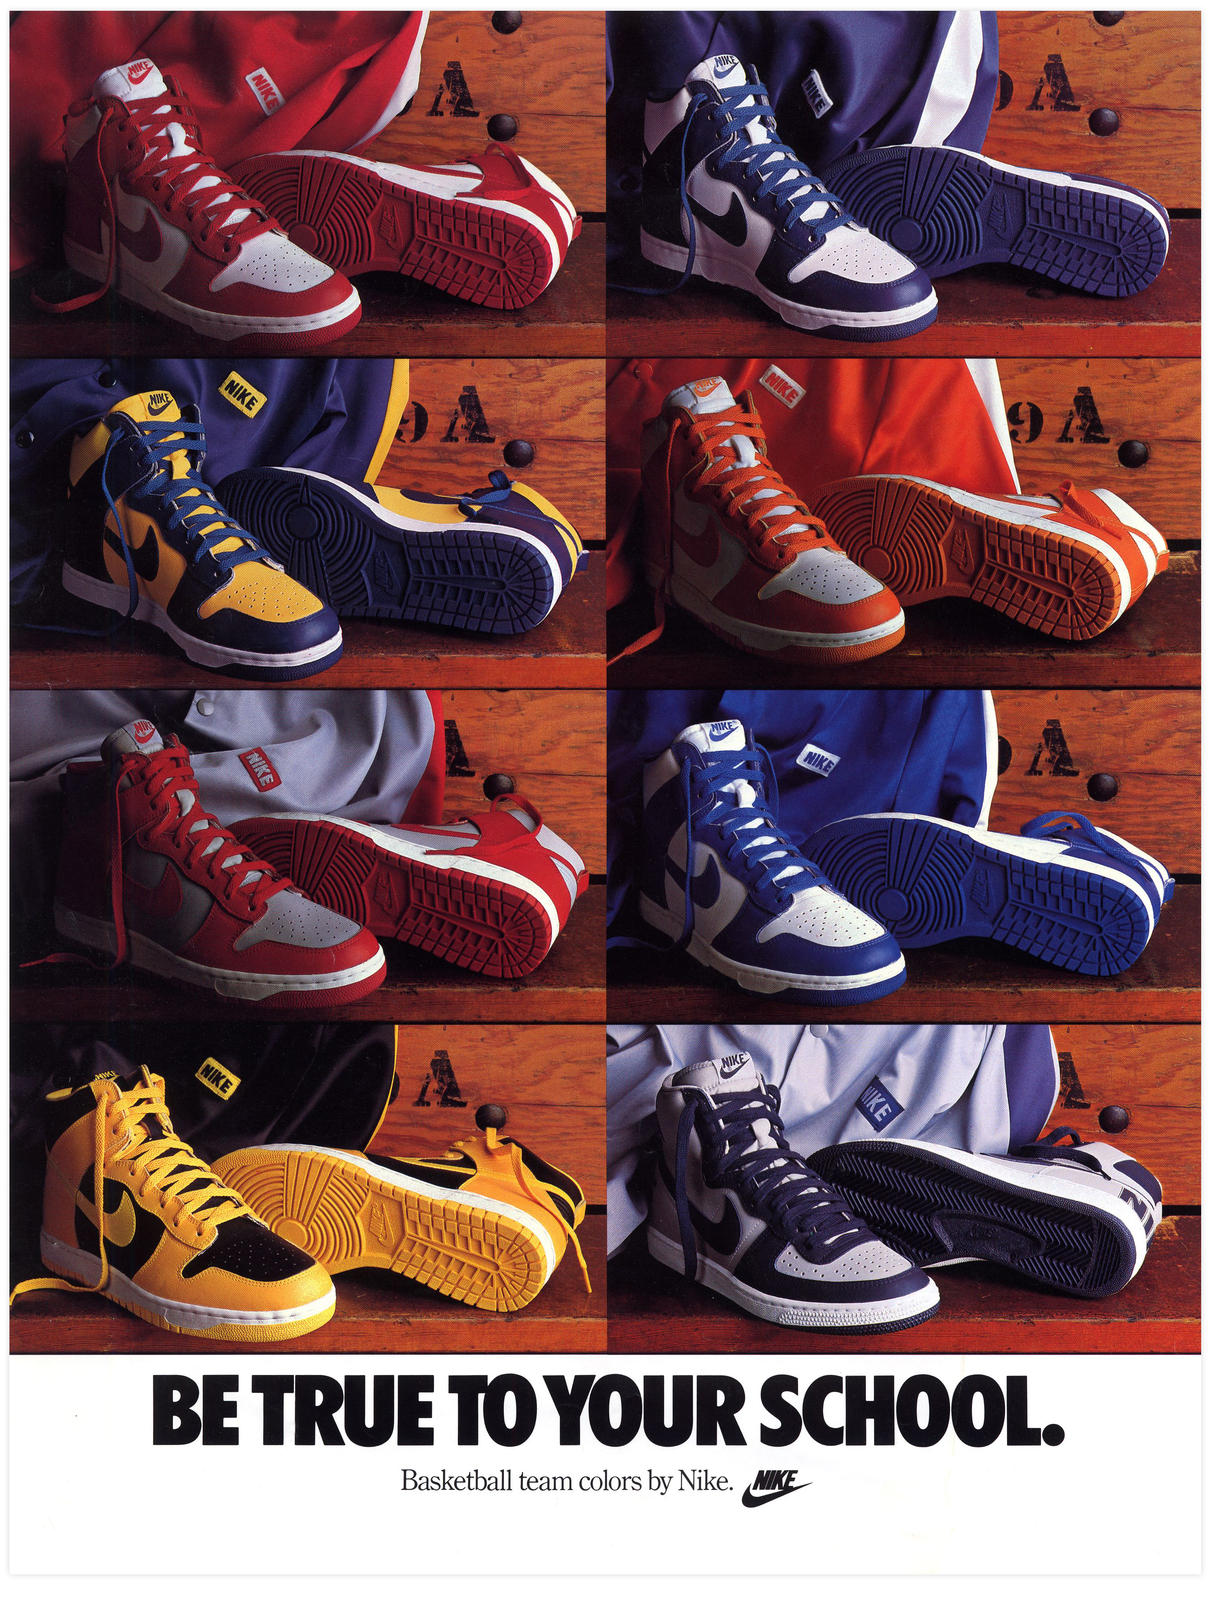 ccec76f74 Inside Access: The Nike Dunk Celebrates 30 Years as an Icon - Nike News